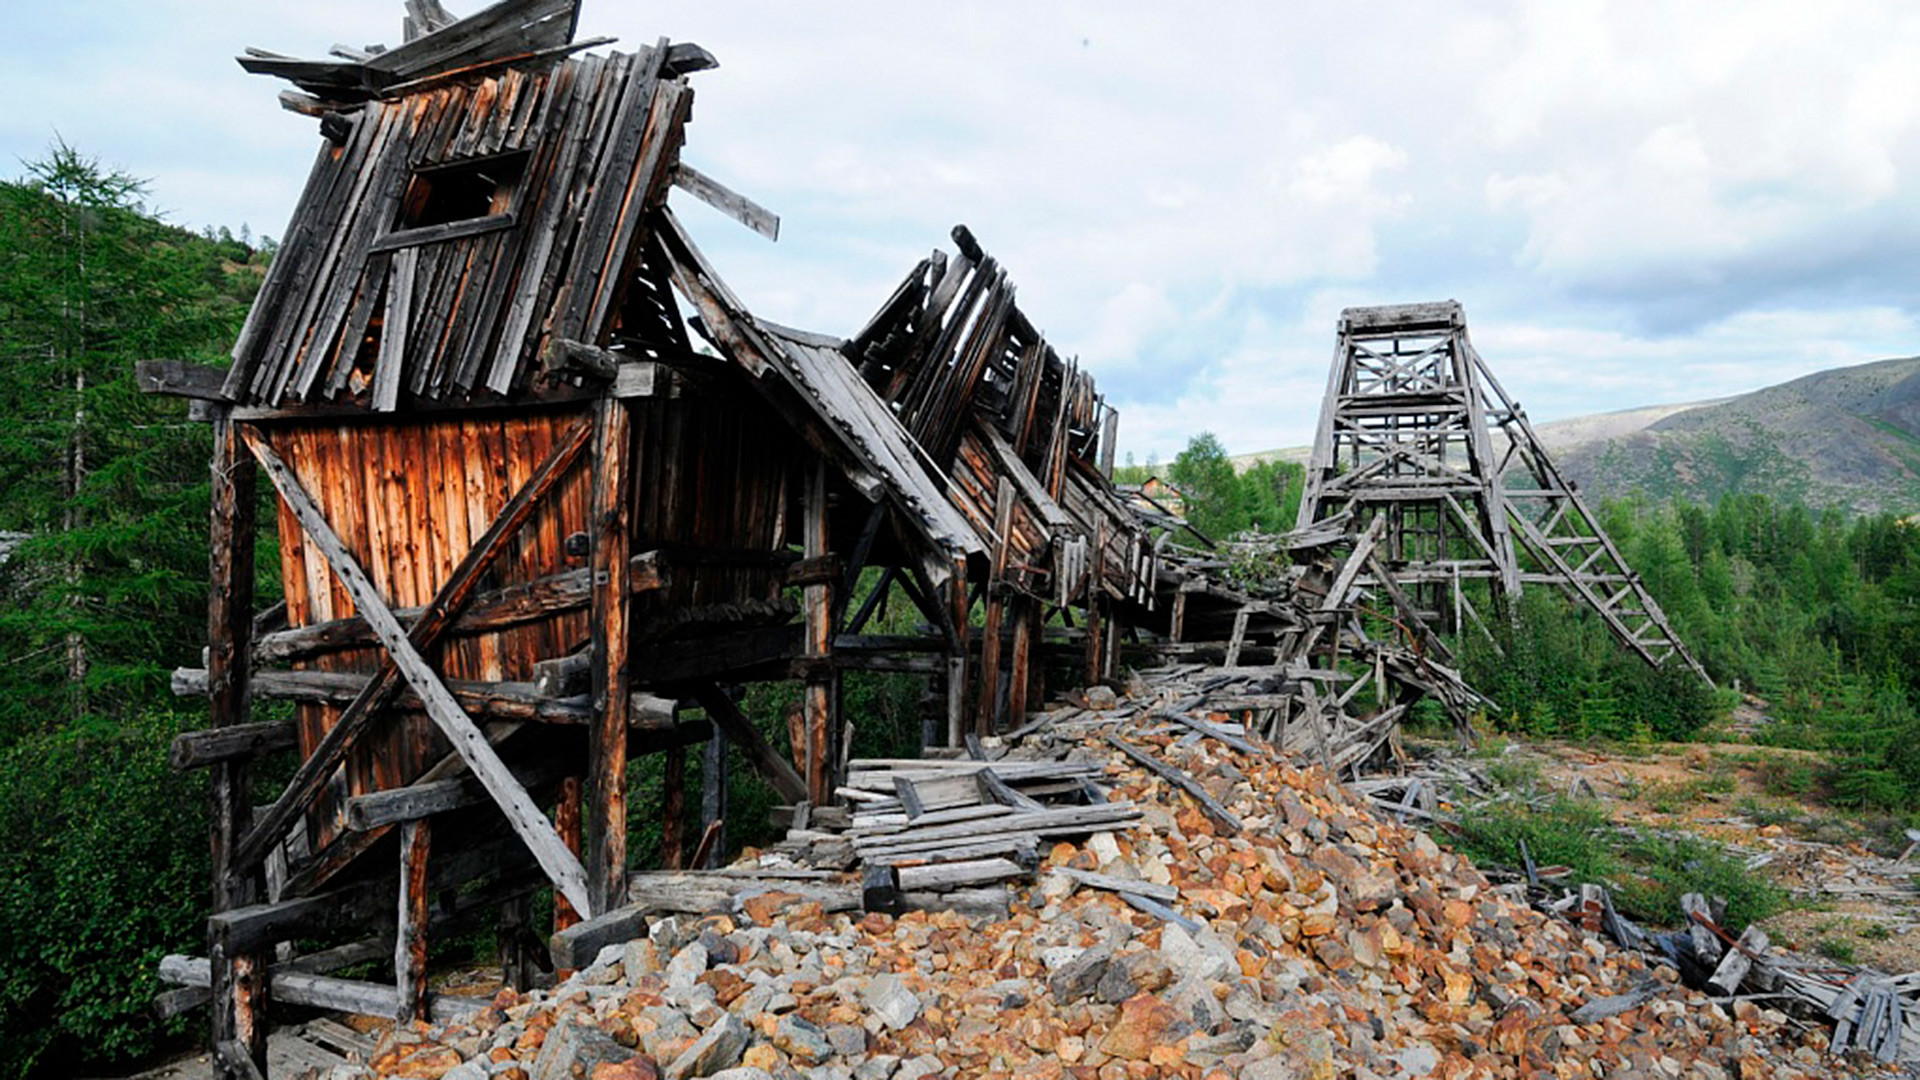 The Dnieper camp and a mine in the Magadan region